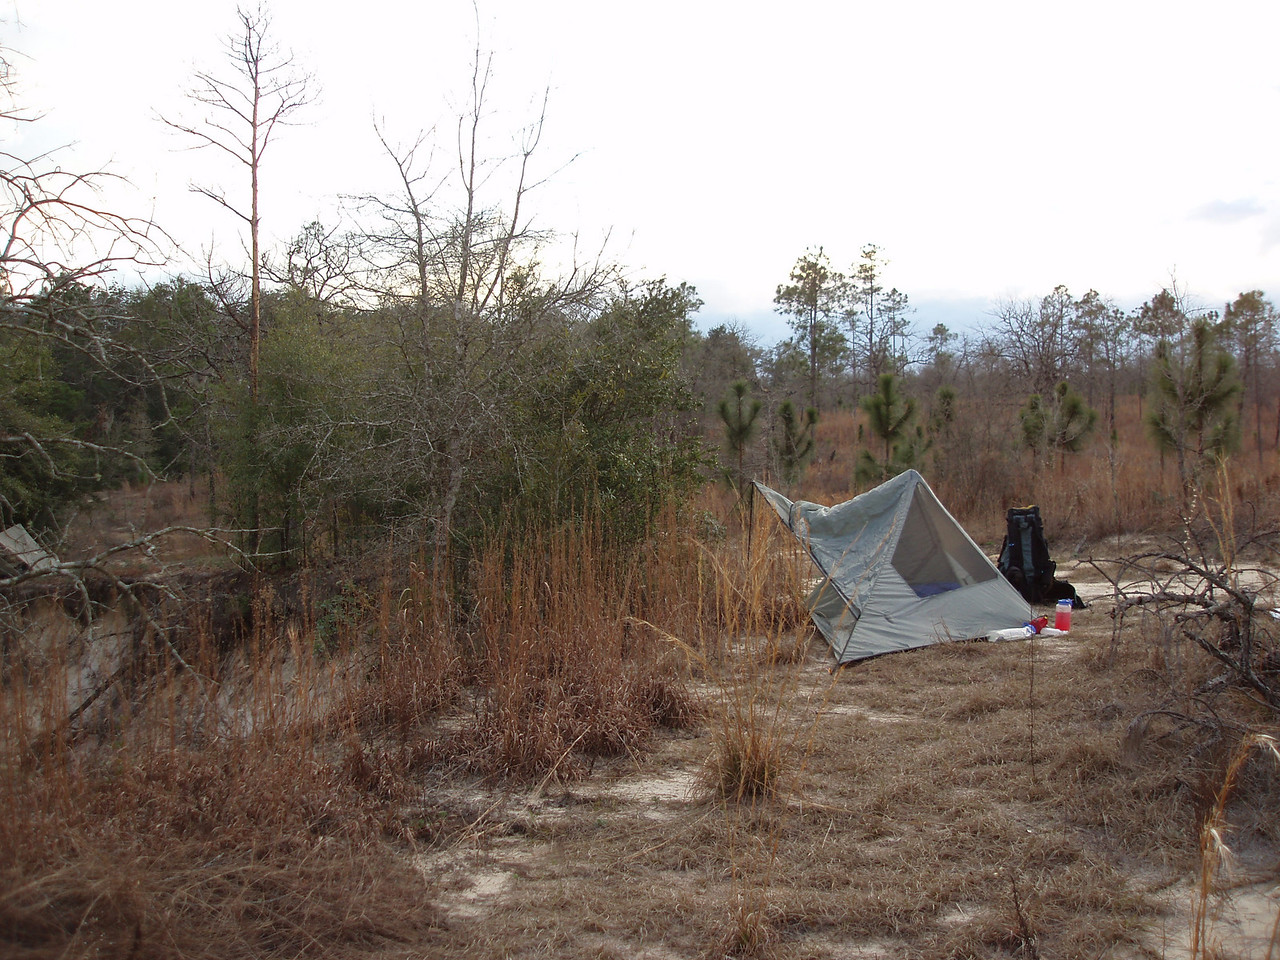 Camping in the Econfina Prairie<br /> PHOTO CREDIT: Robert Coveney / Florida Trail Association